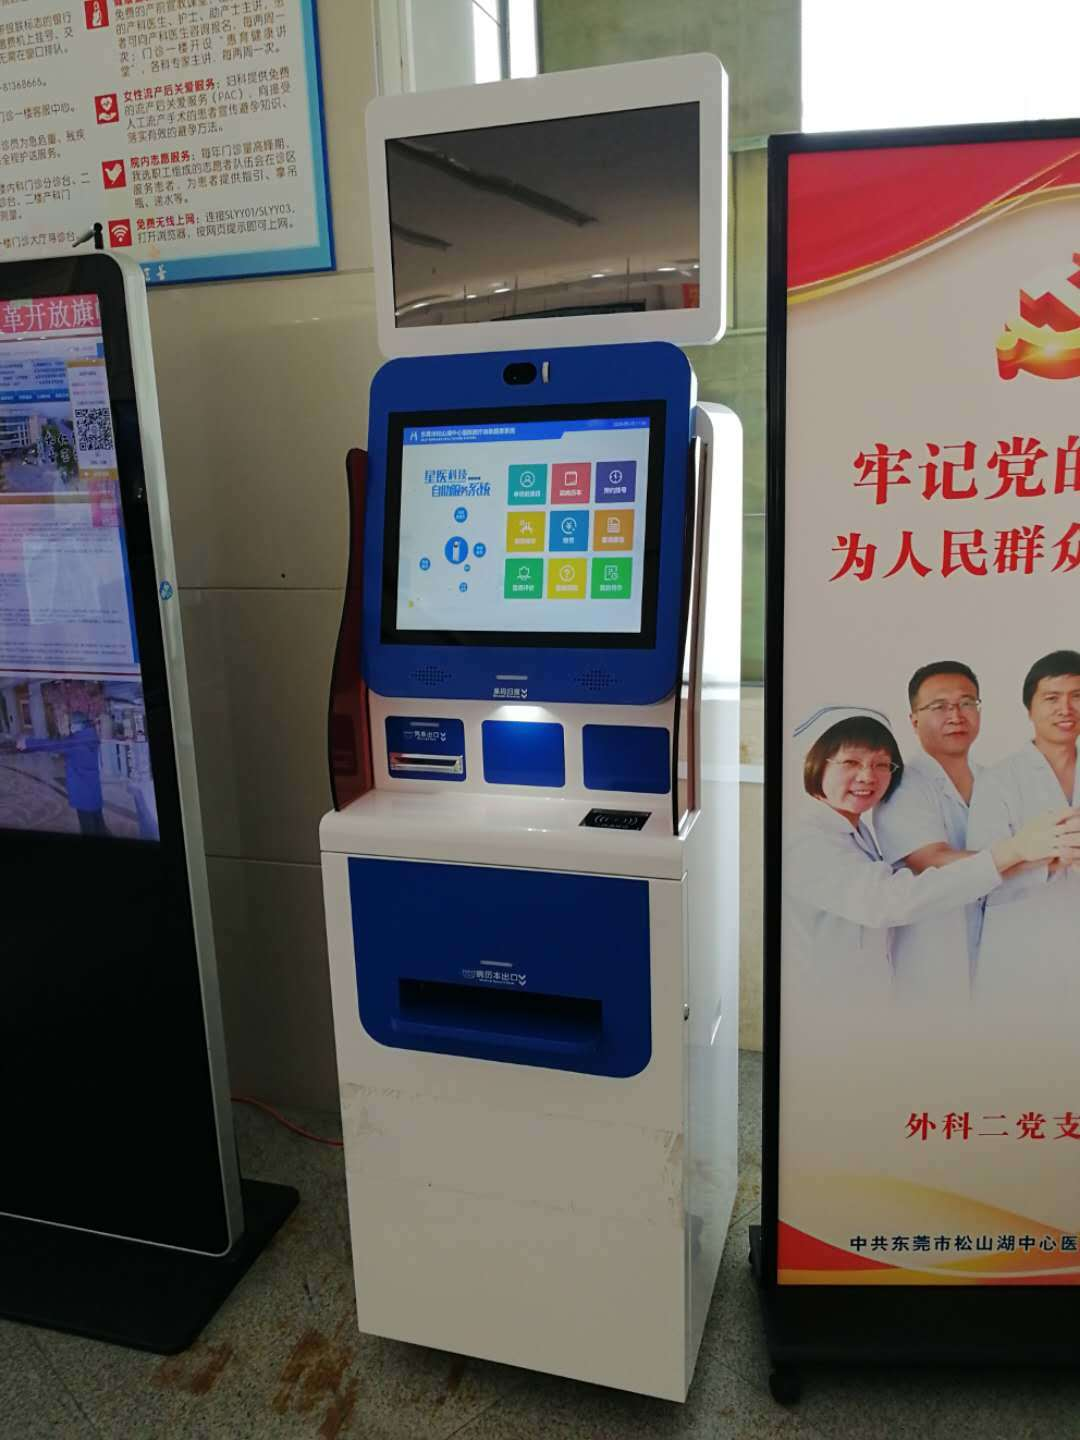 digital signage self service medical book applicating kiosk terminal for hospital patients with book dispensing